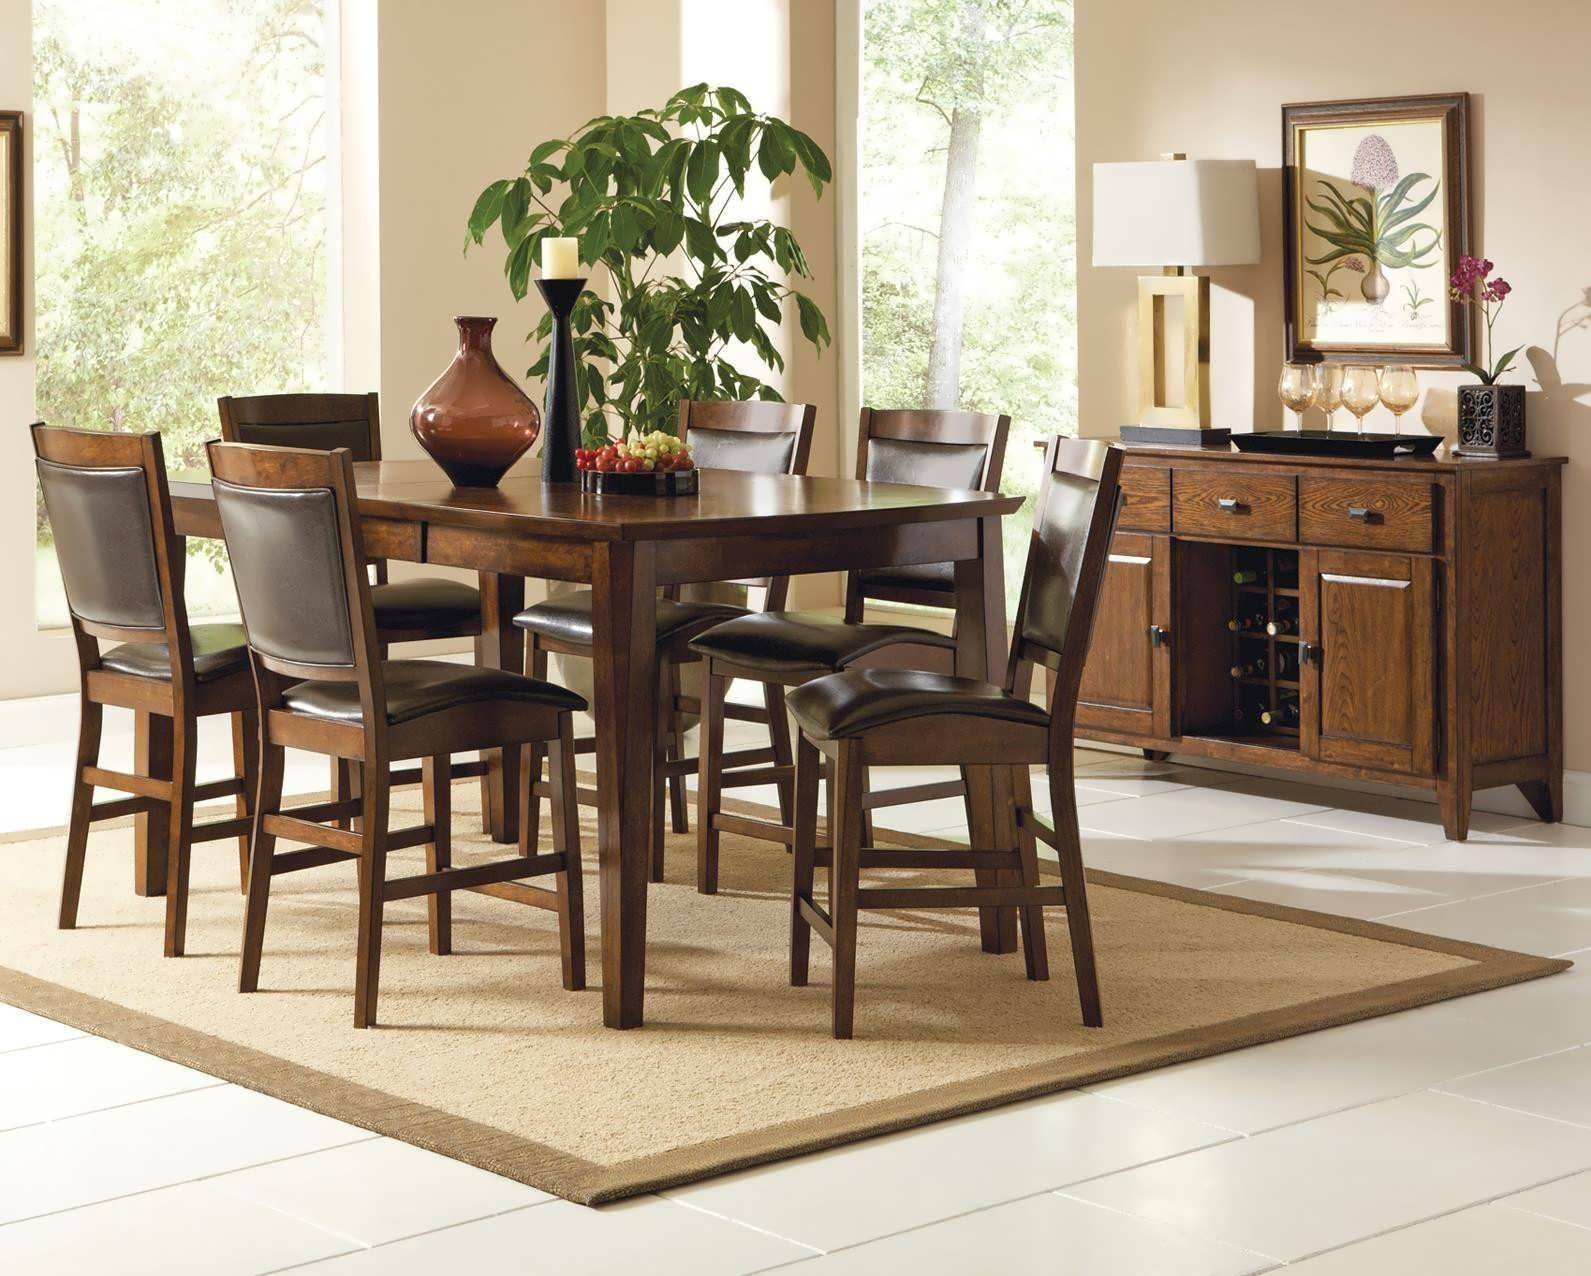 Counter Height Dining Sets Consist Of 5 Piece Counter Height Dining Set Espresso Featured With 9 Piece Counter Height Dining Sets